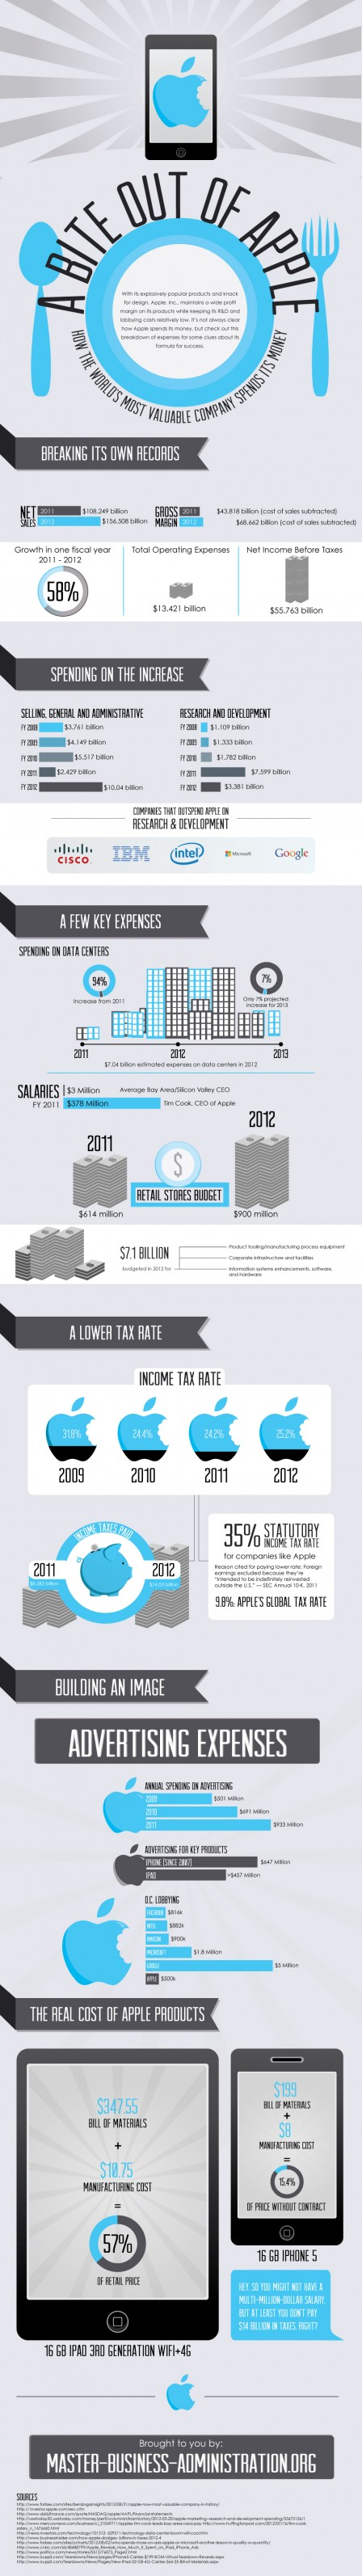 infographie-apple-depenses